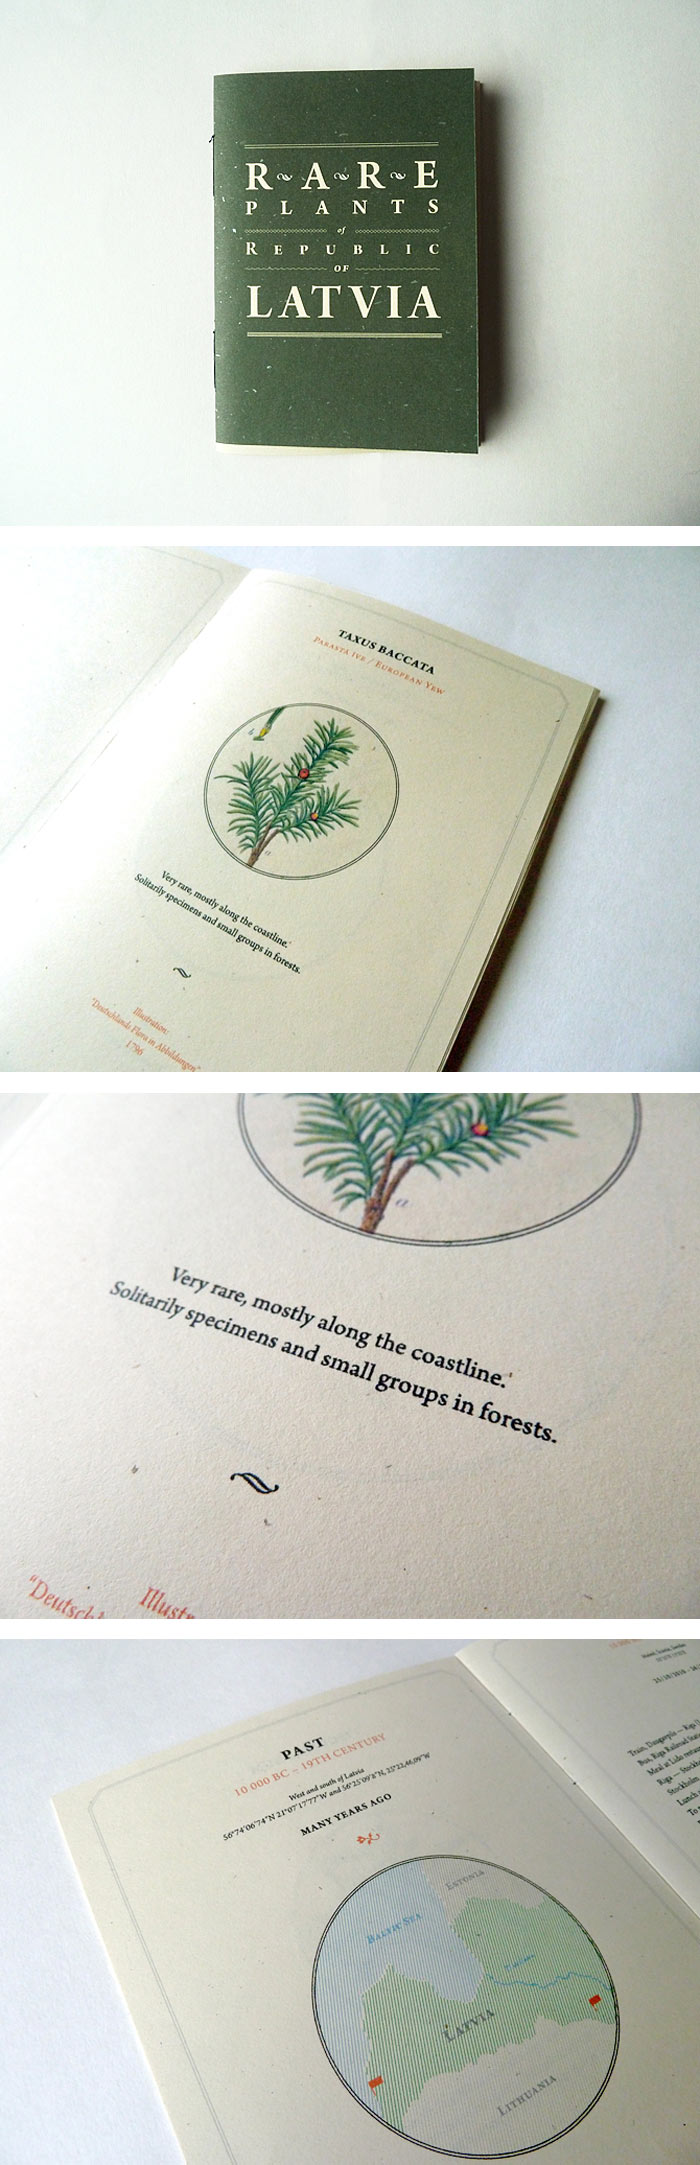 Norrskog / Book design - Rare Plants of Republic of Latvia